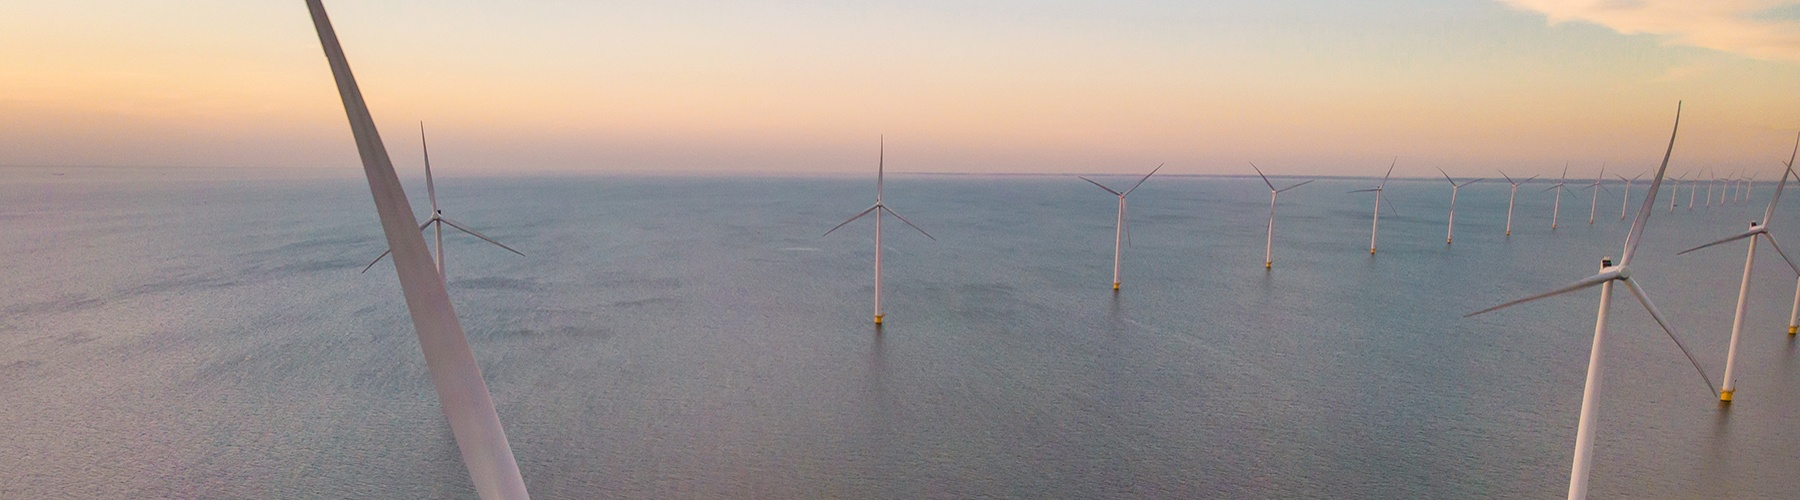 Bottom-fixed offshore wind farm